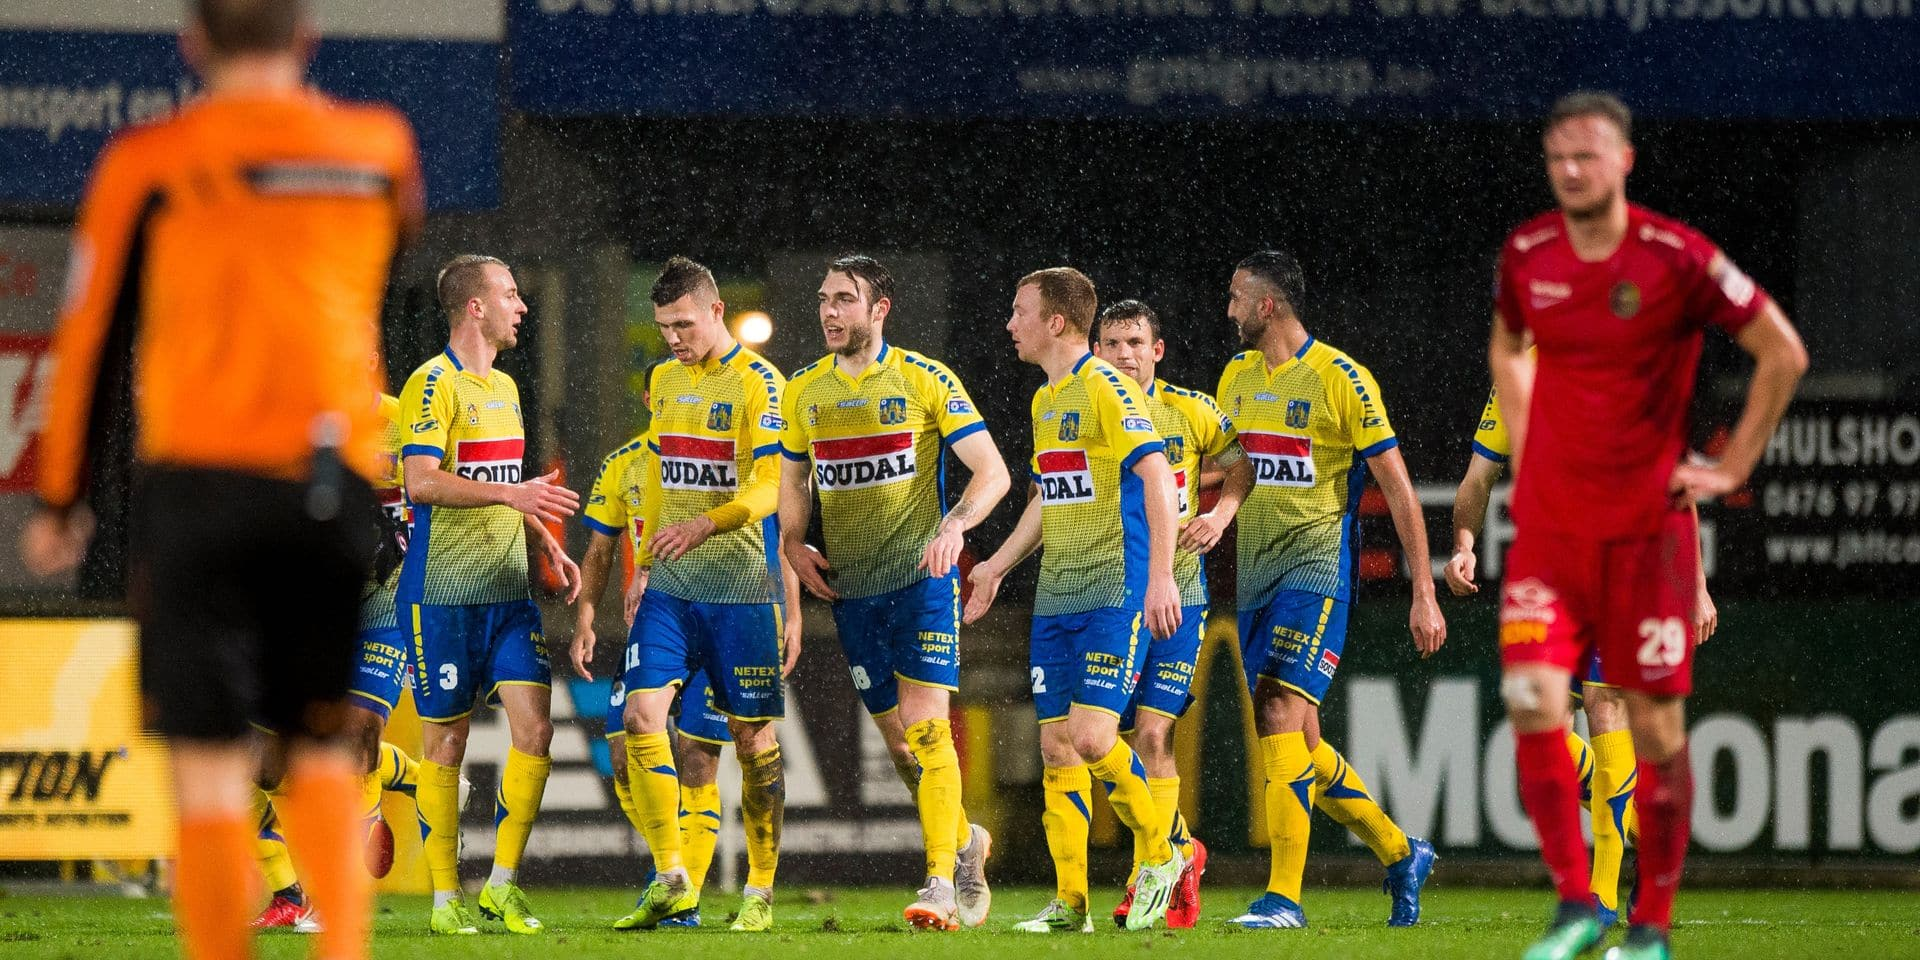 Westerlo's players celebrate after scoring during a soccer game between KVC Westerlo and AFC Tubize, Friday 08 February 2019 in Westerlo, on the 25th day of the 'Proximus League' 1B division of the Belgian soccer championship. BELGA PHOTO JASPER JACOBS